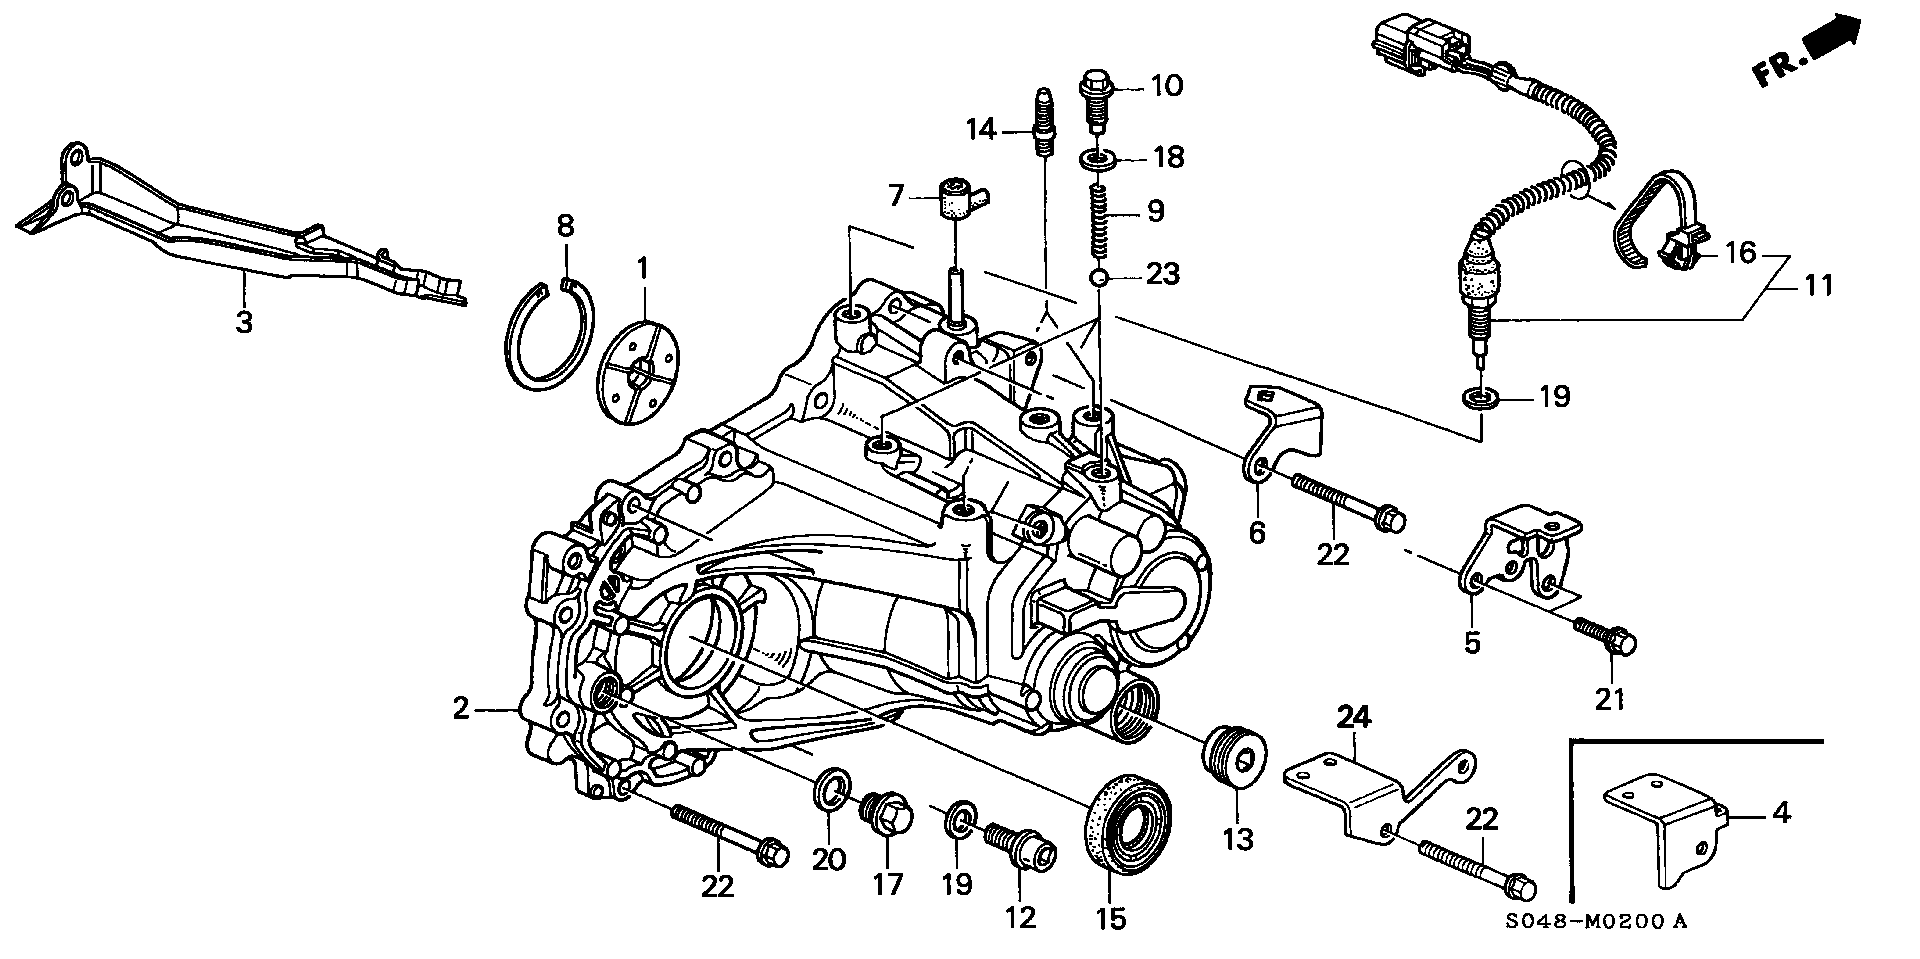 1990 Honda Civic Automatic Transmission on 1990 Acura Integra Electrical Diagram